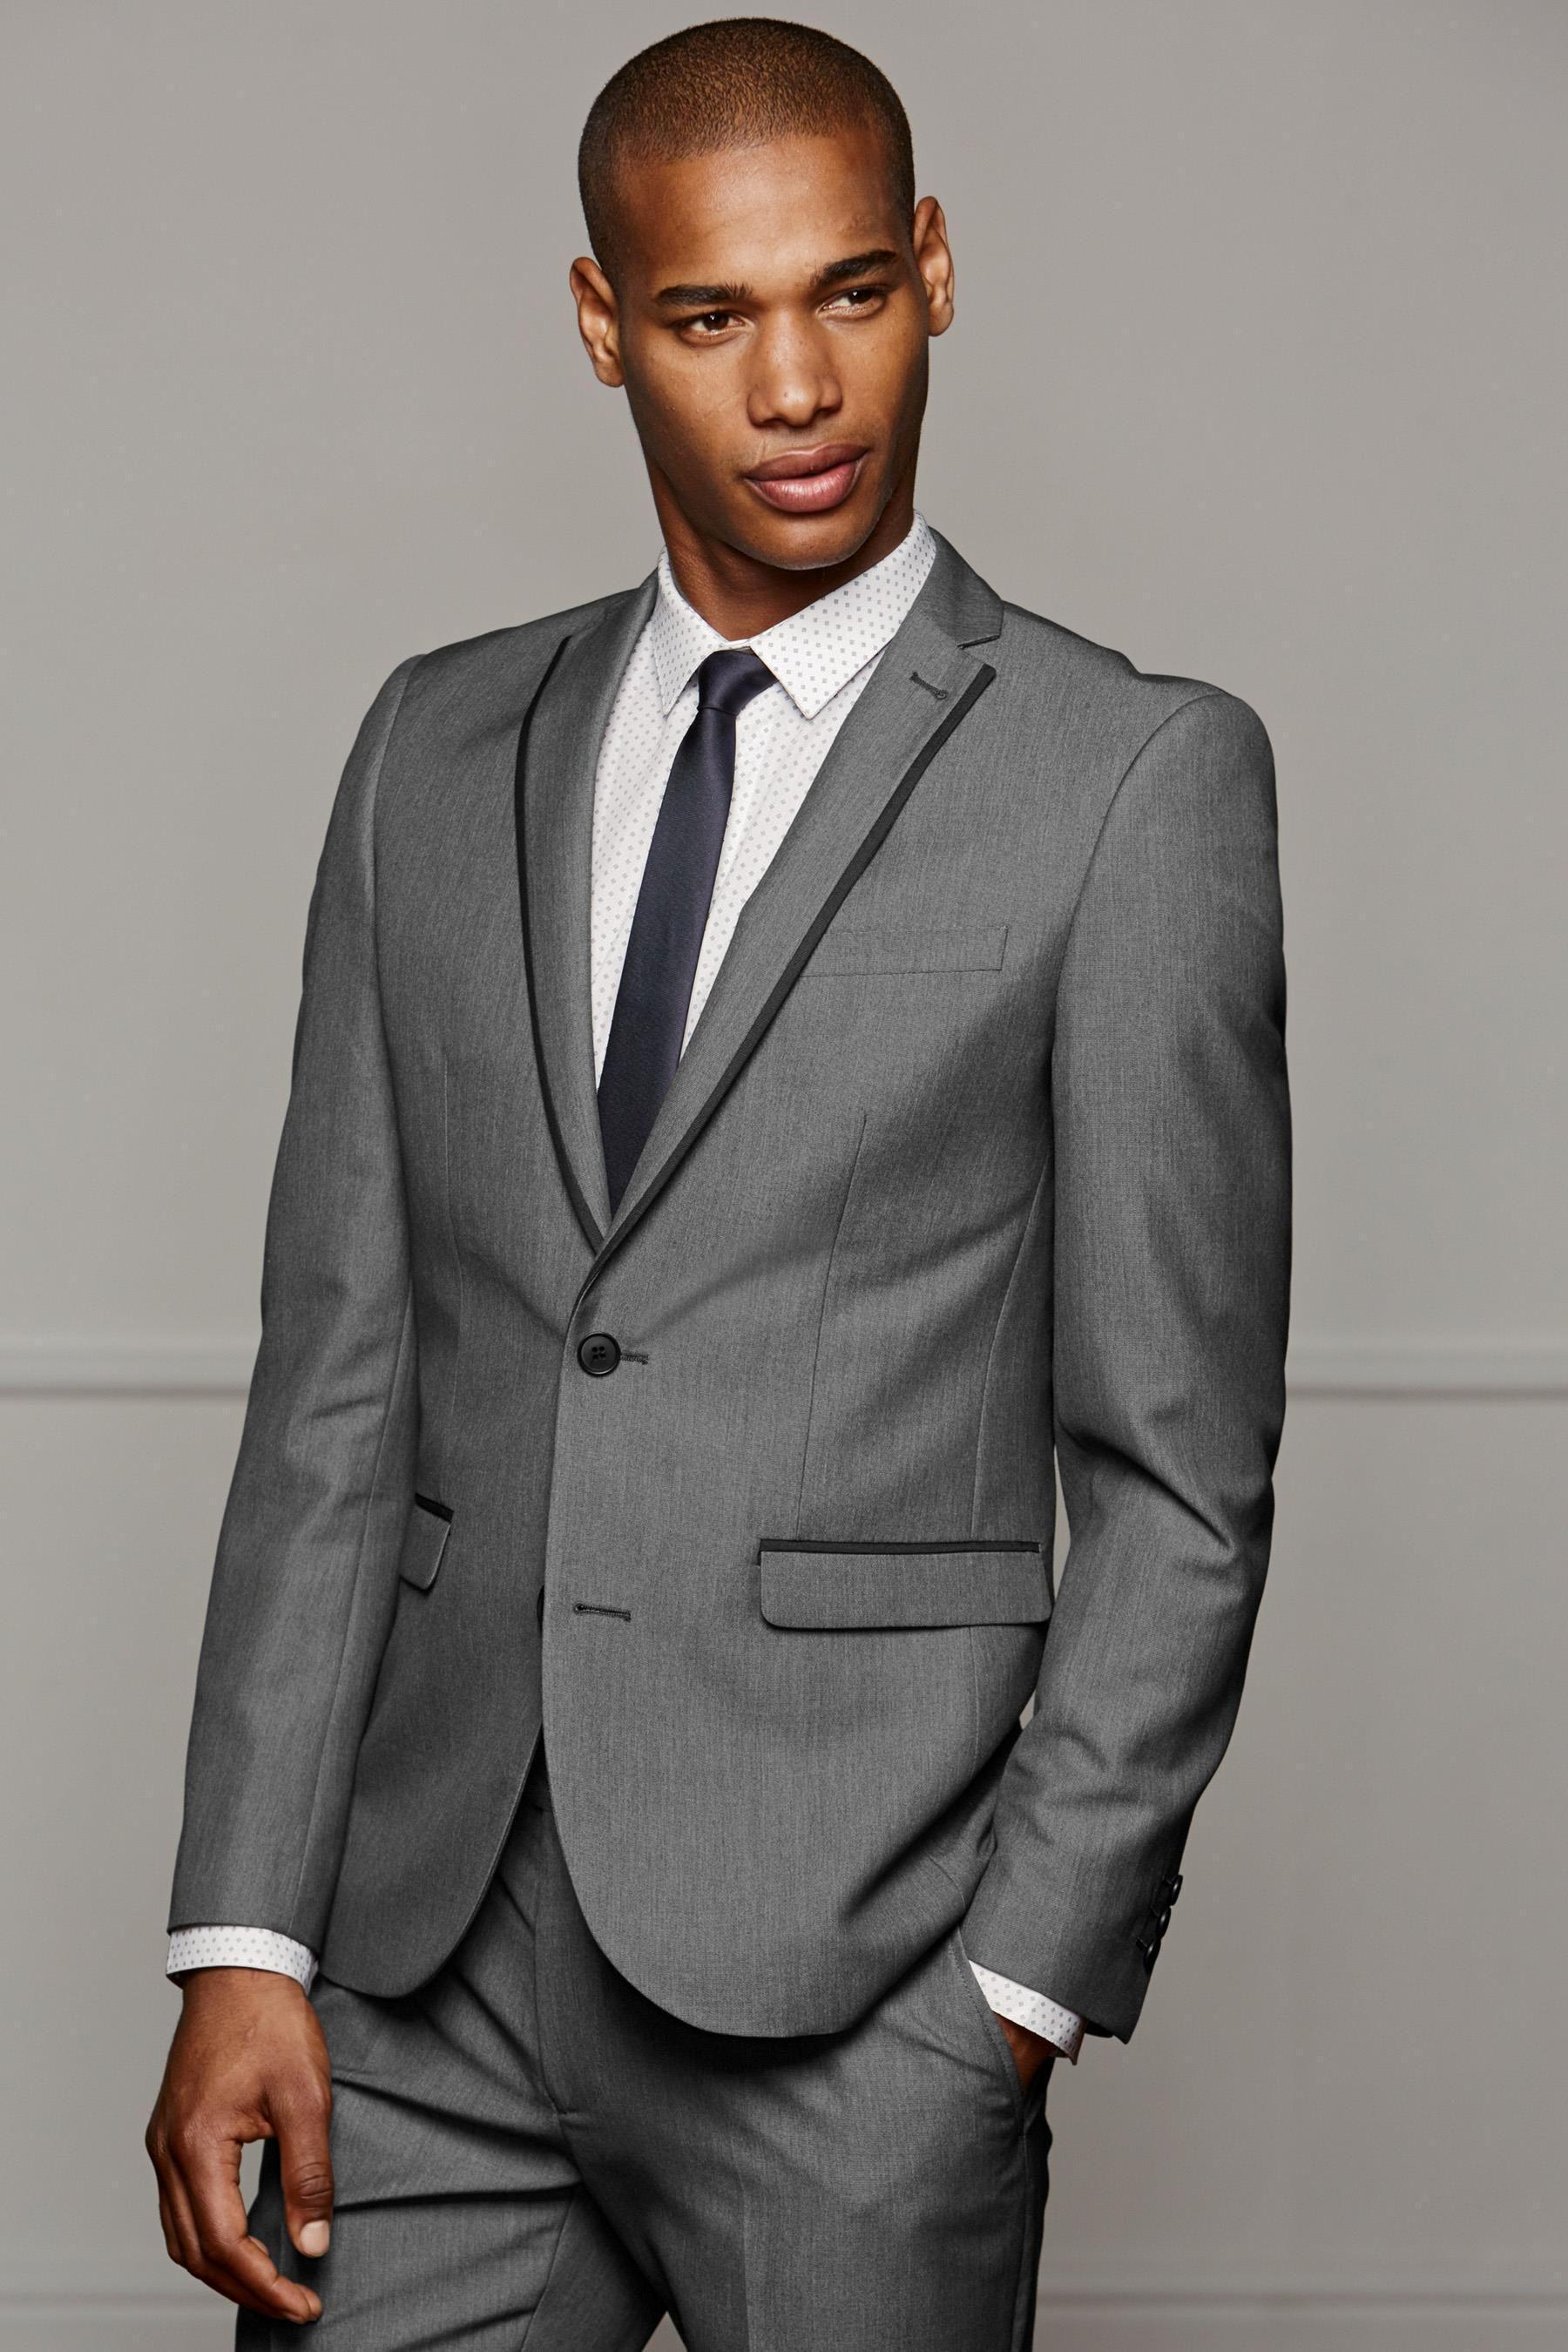 gray black, trueiuptaf.gq is an online store offering some of the best Mens Suits, Tuxedos, Discount Zoot Suits and lot more.